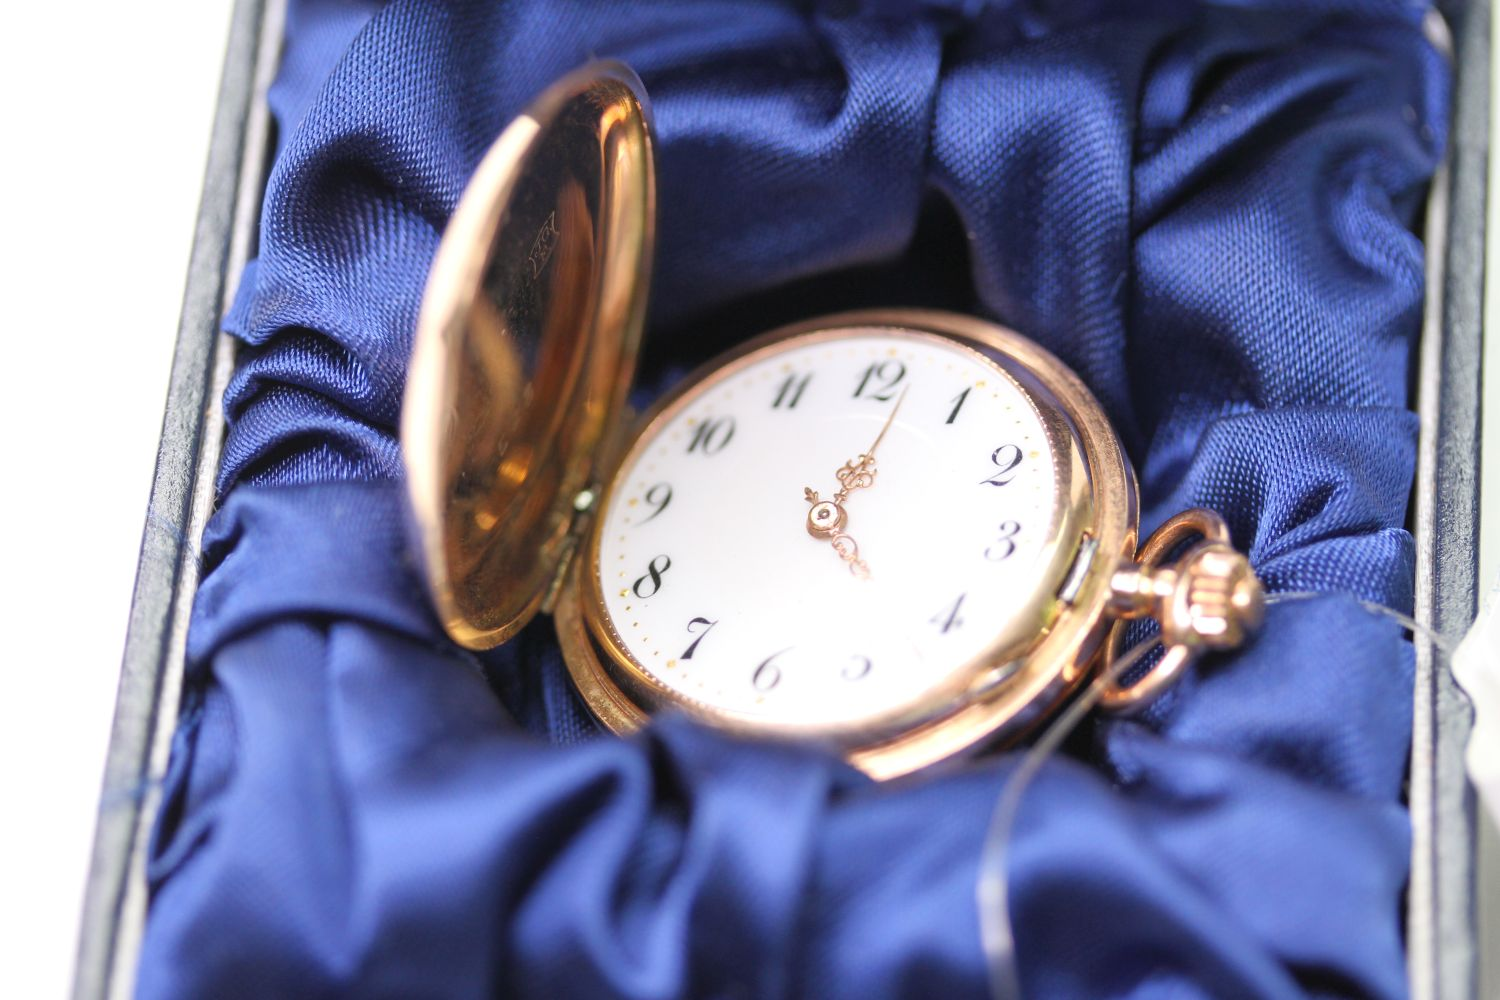 14CT GOLD FOB WATCH, circular white dial with arabic numbers, 31mm case, stamped J.G.F. 585 33523, - Image 2 of 4